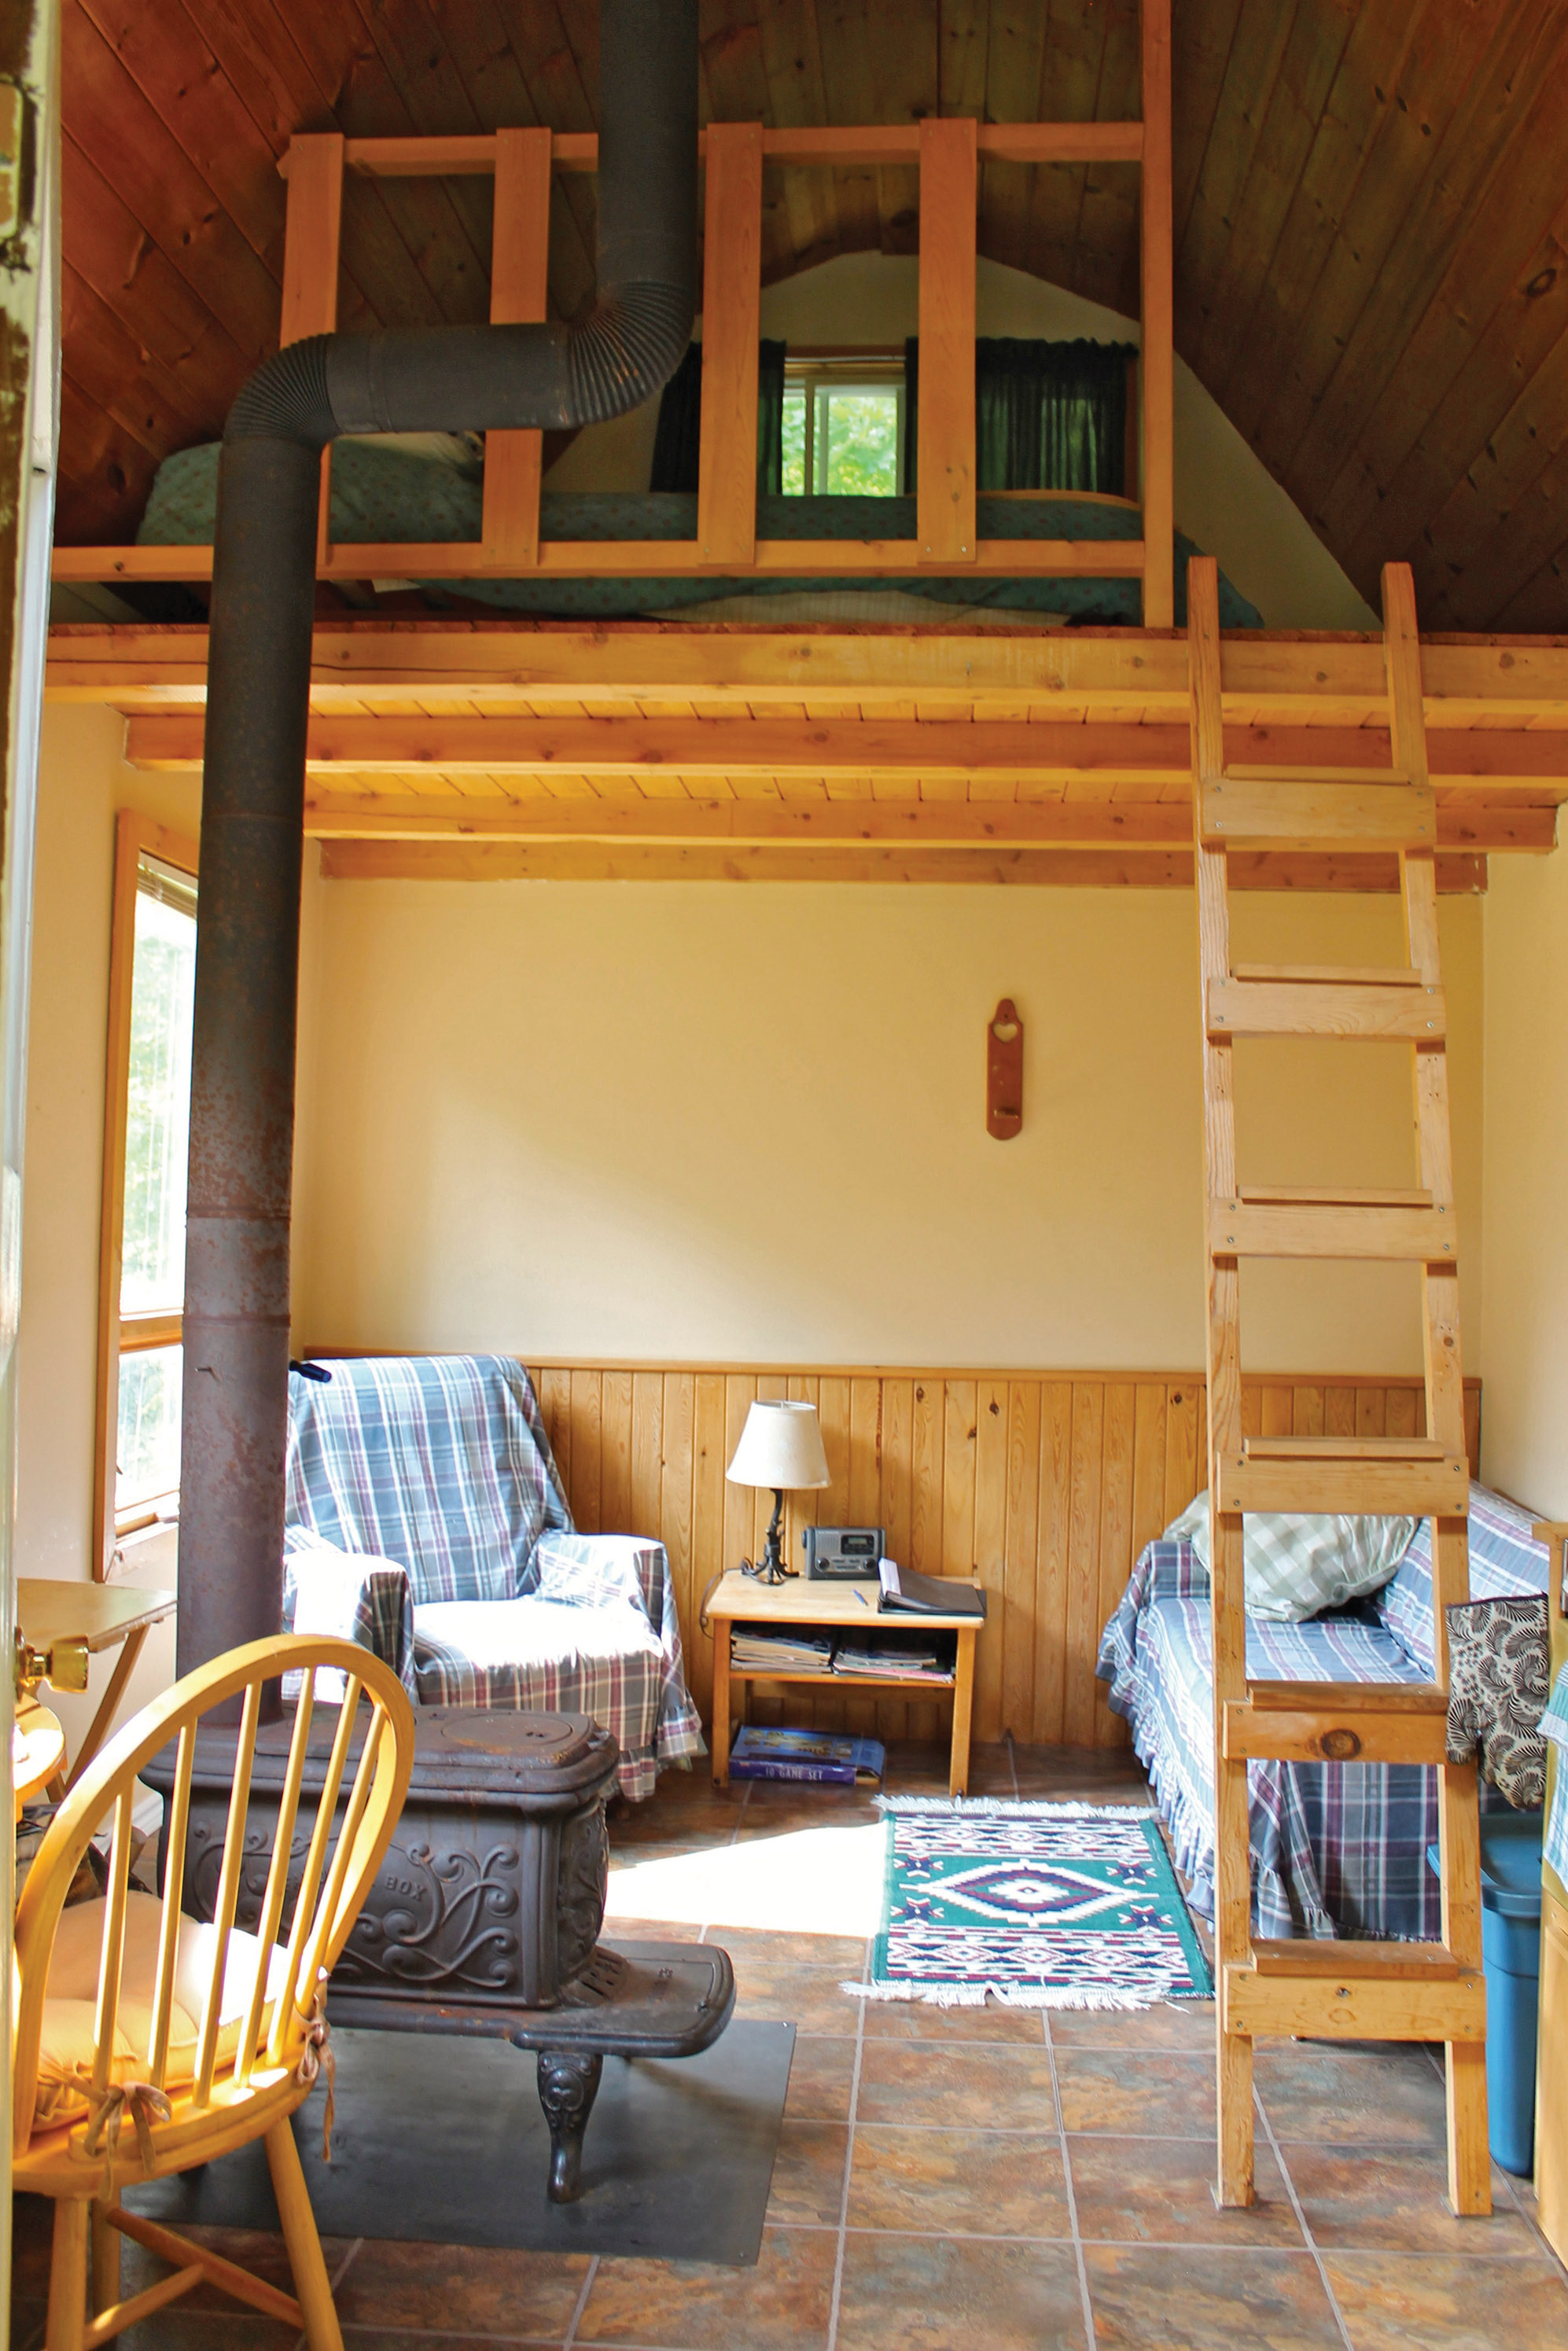 The minimalist guest house is booked most weekends, even in February, despite the fact it has no running water or electricity. Harvey provides drinking water and firewood, and there is easy access to the lake.